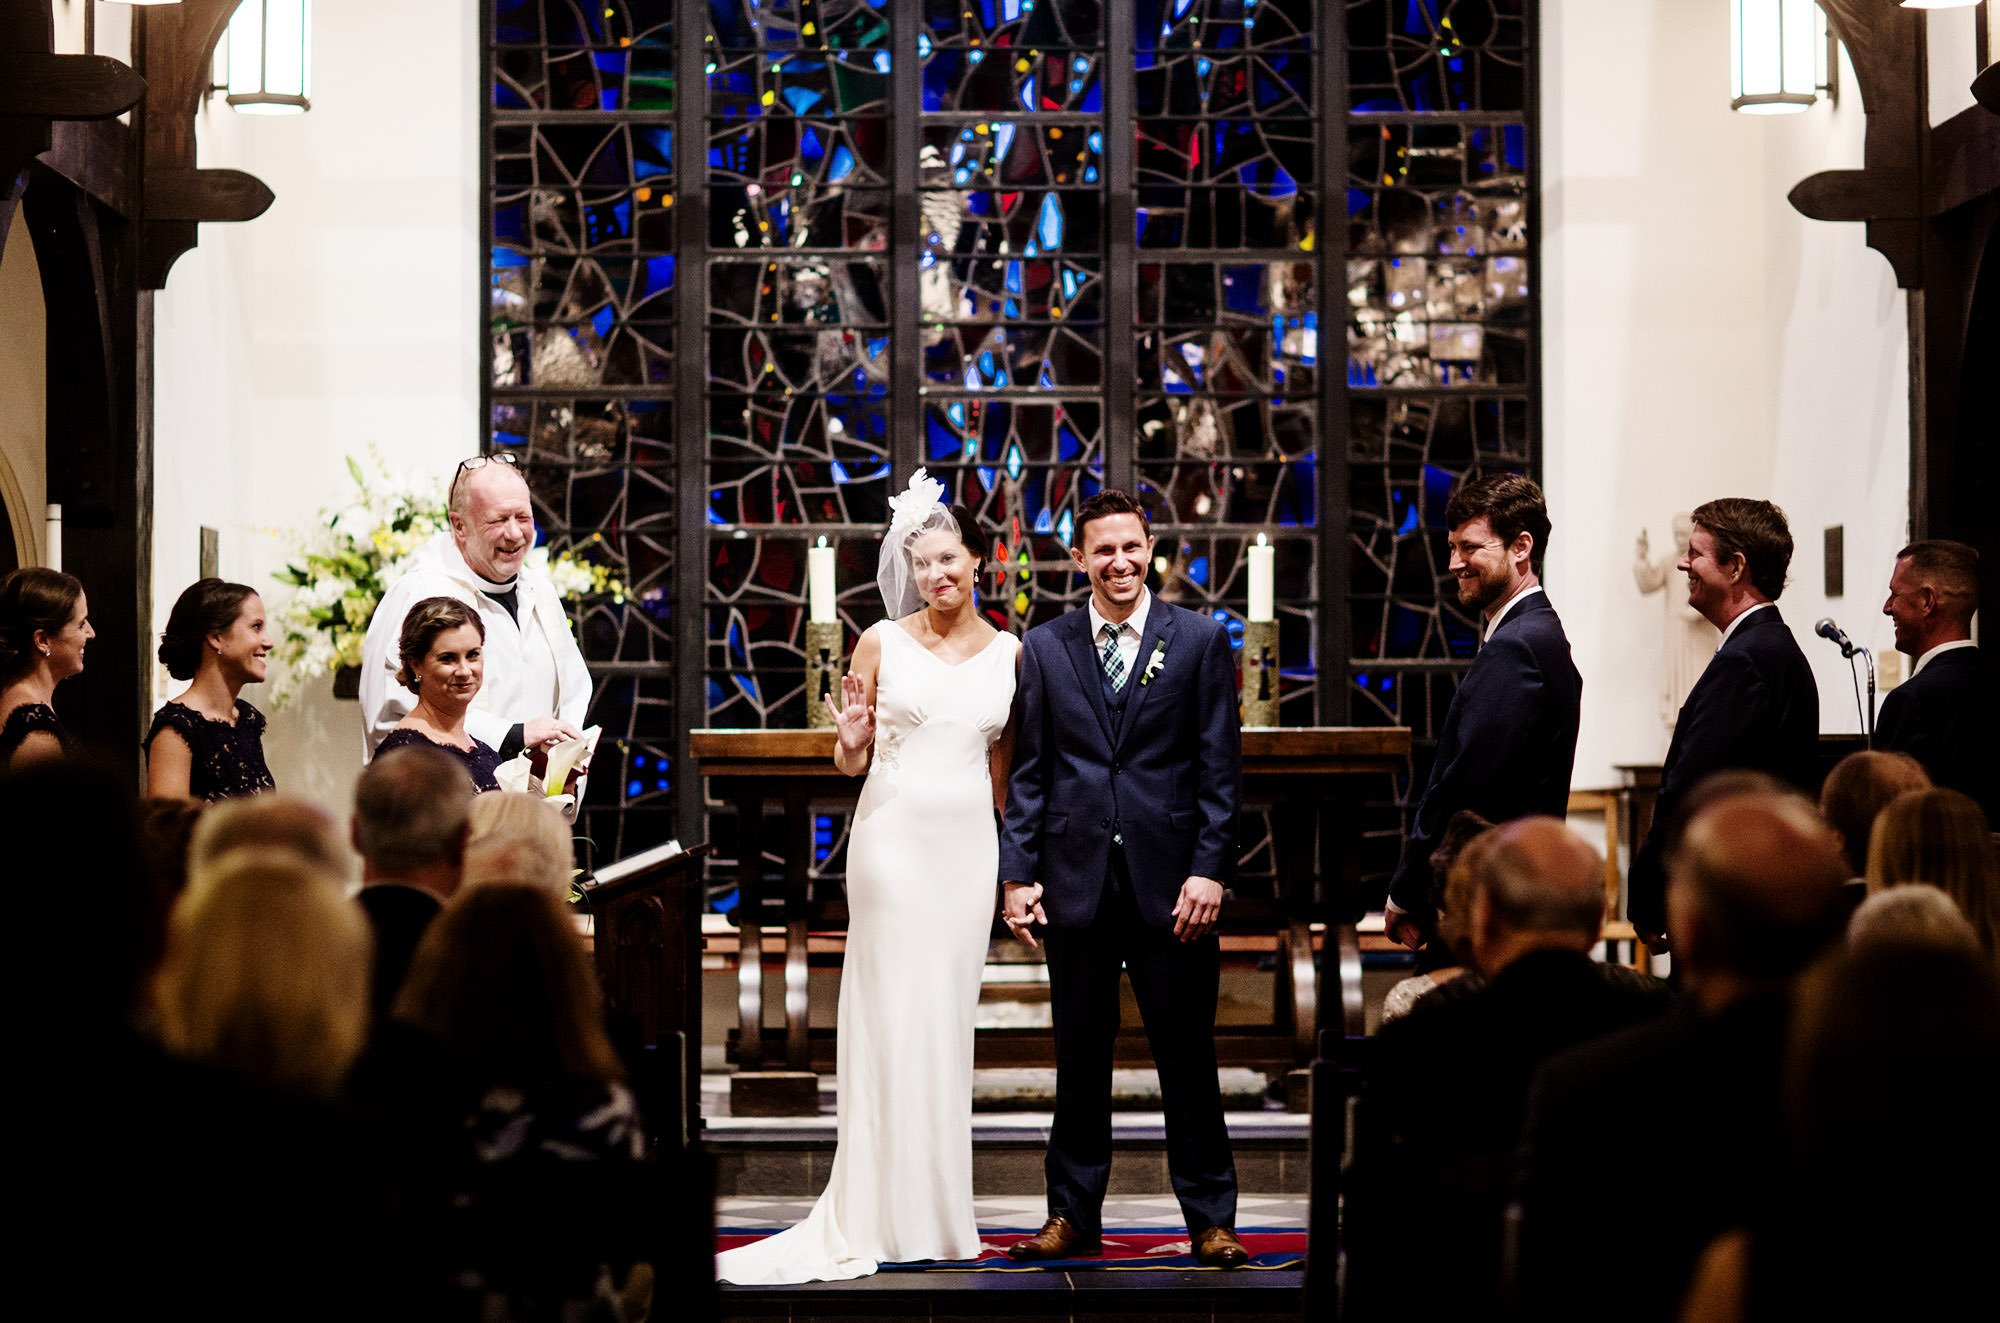 The Bride and Groom During their Ceremony at St. Alban's Church.